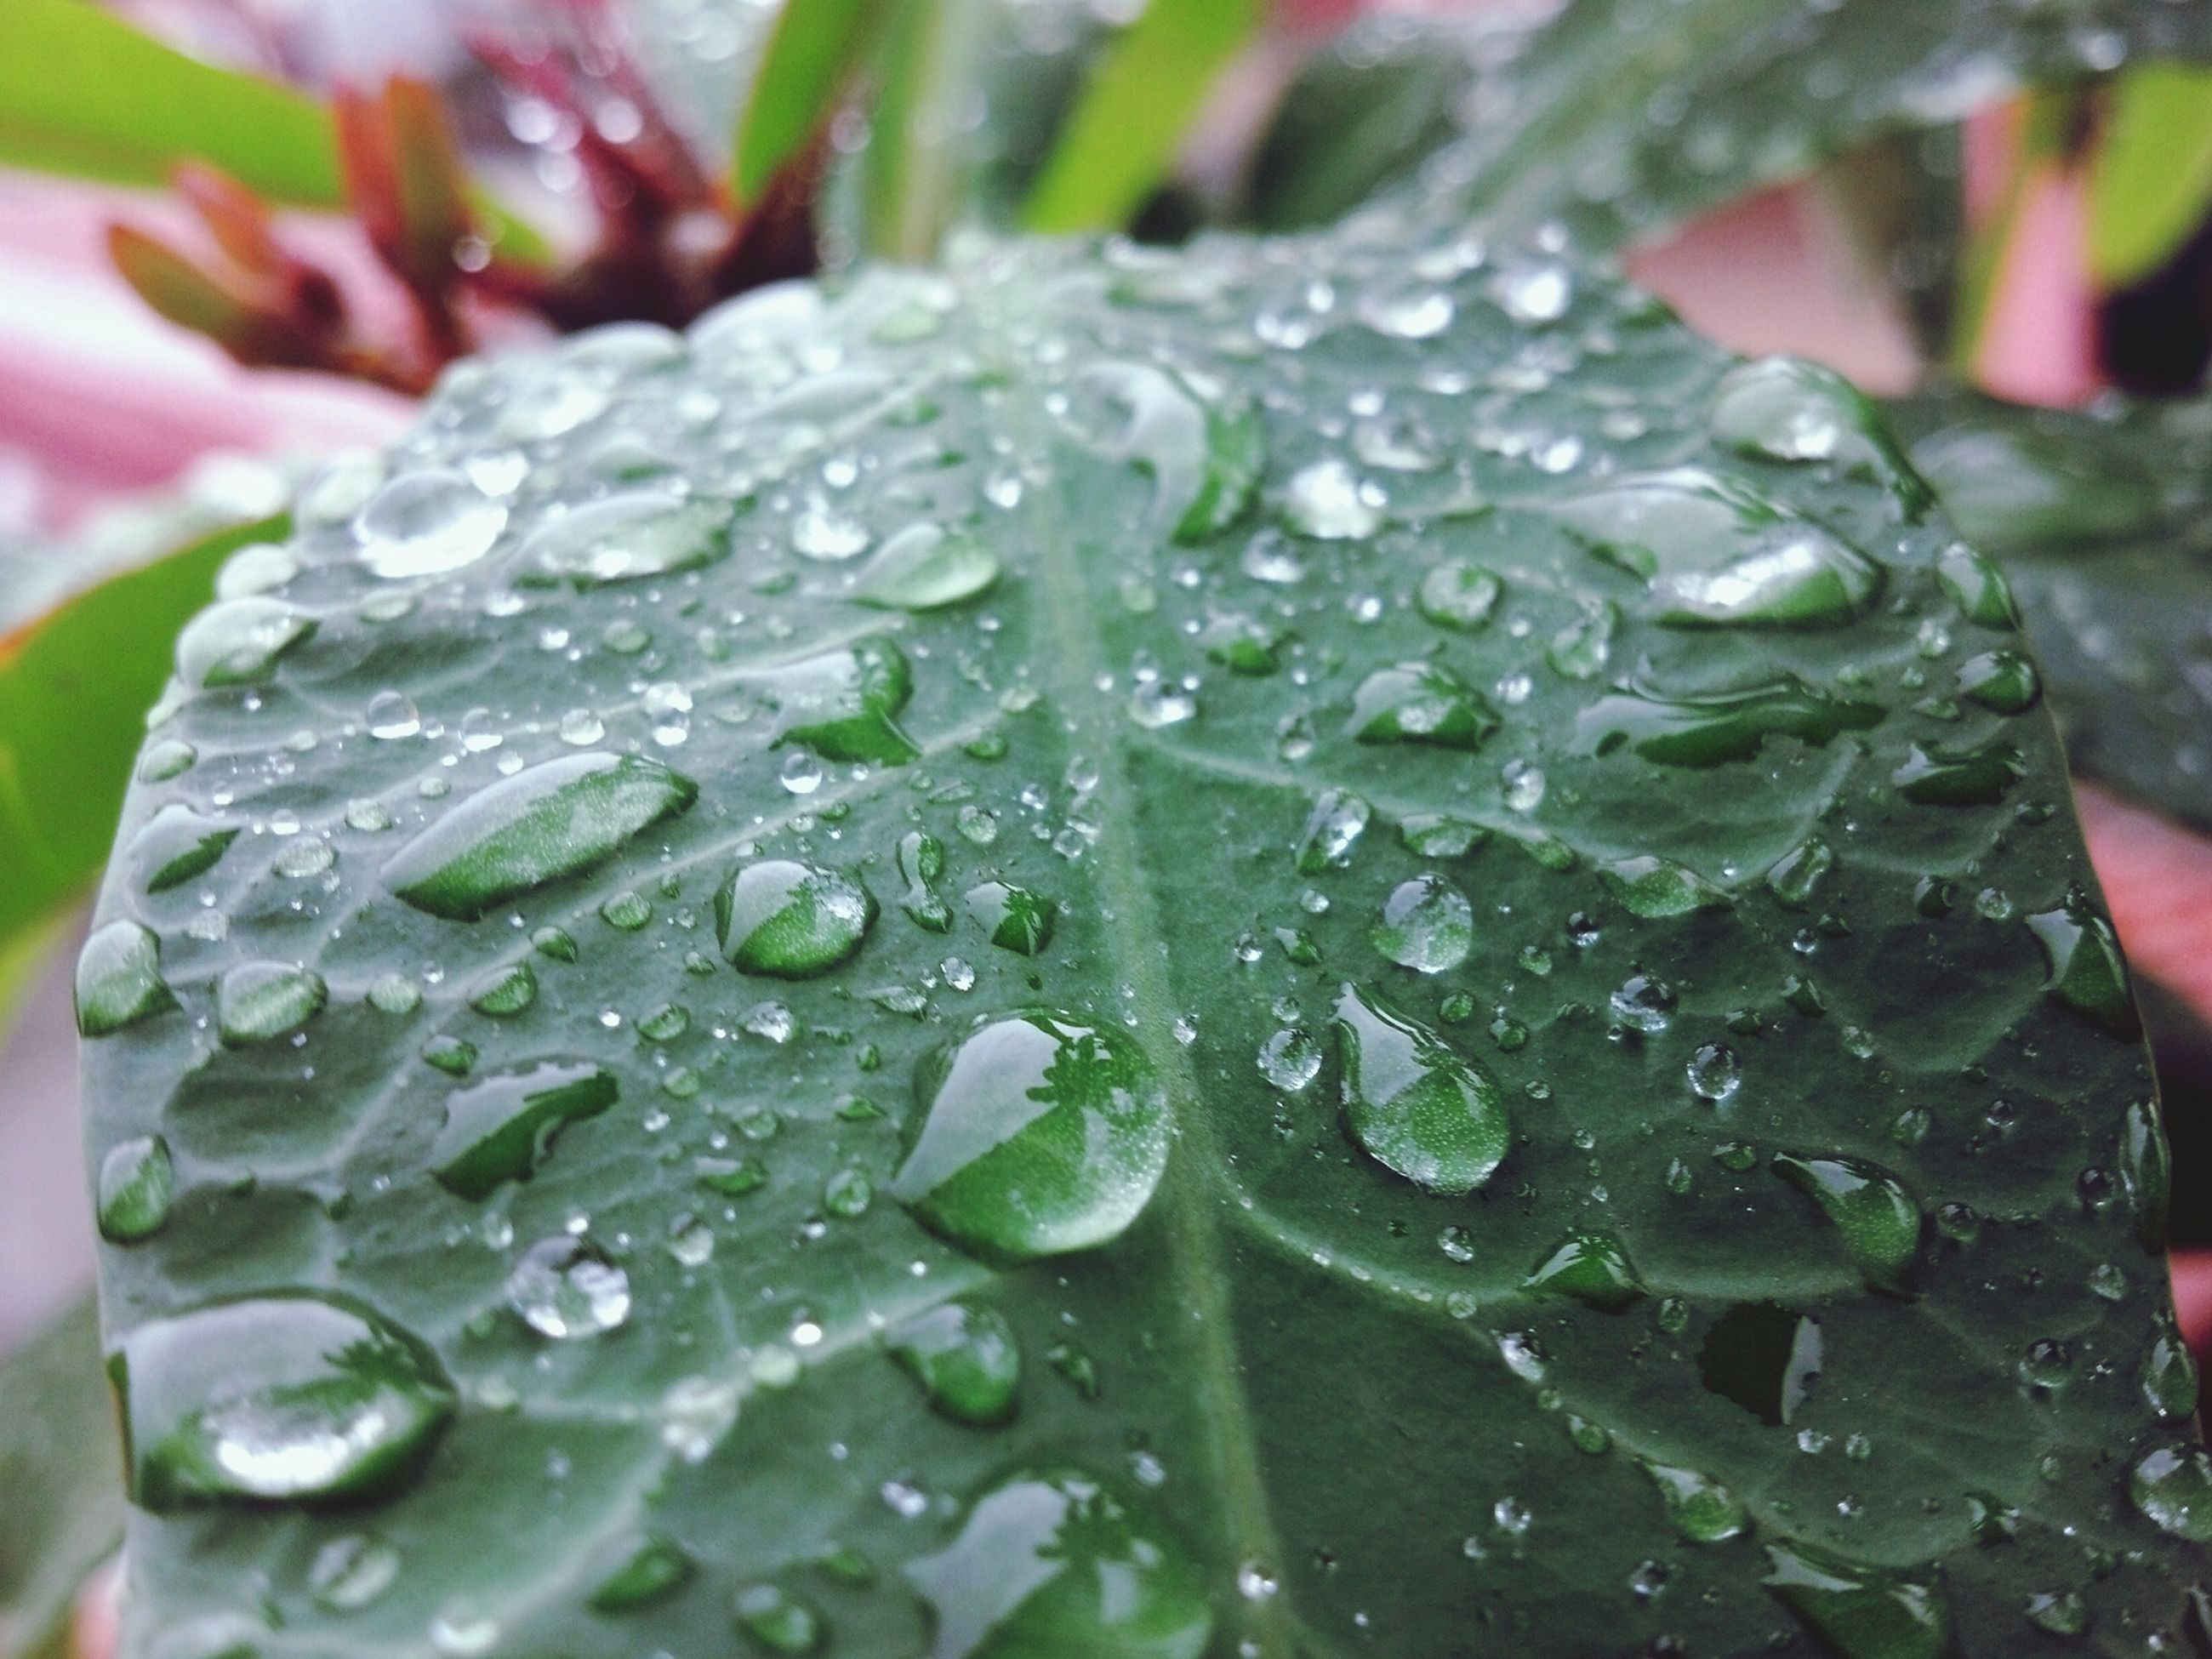 drop, water, leaf, wet, freshness, close-up, green color, growth, fragility, dew, plant, nature, beauty in nature, focus on foreground, raindrop, rain, droplet, purity, selective focus, season